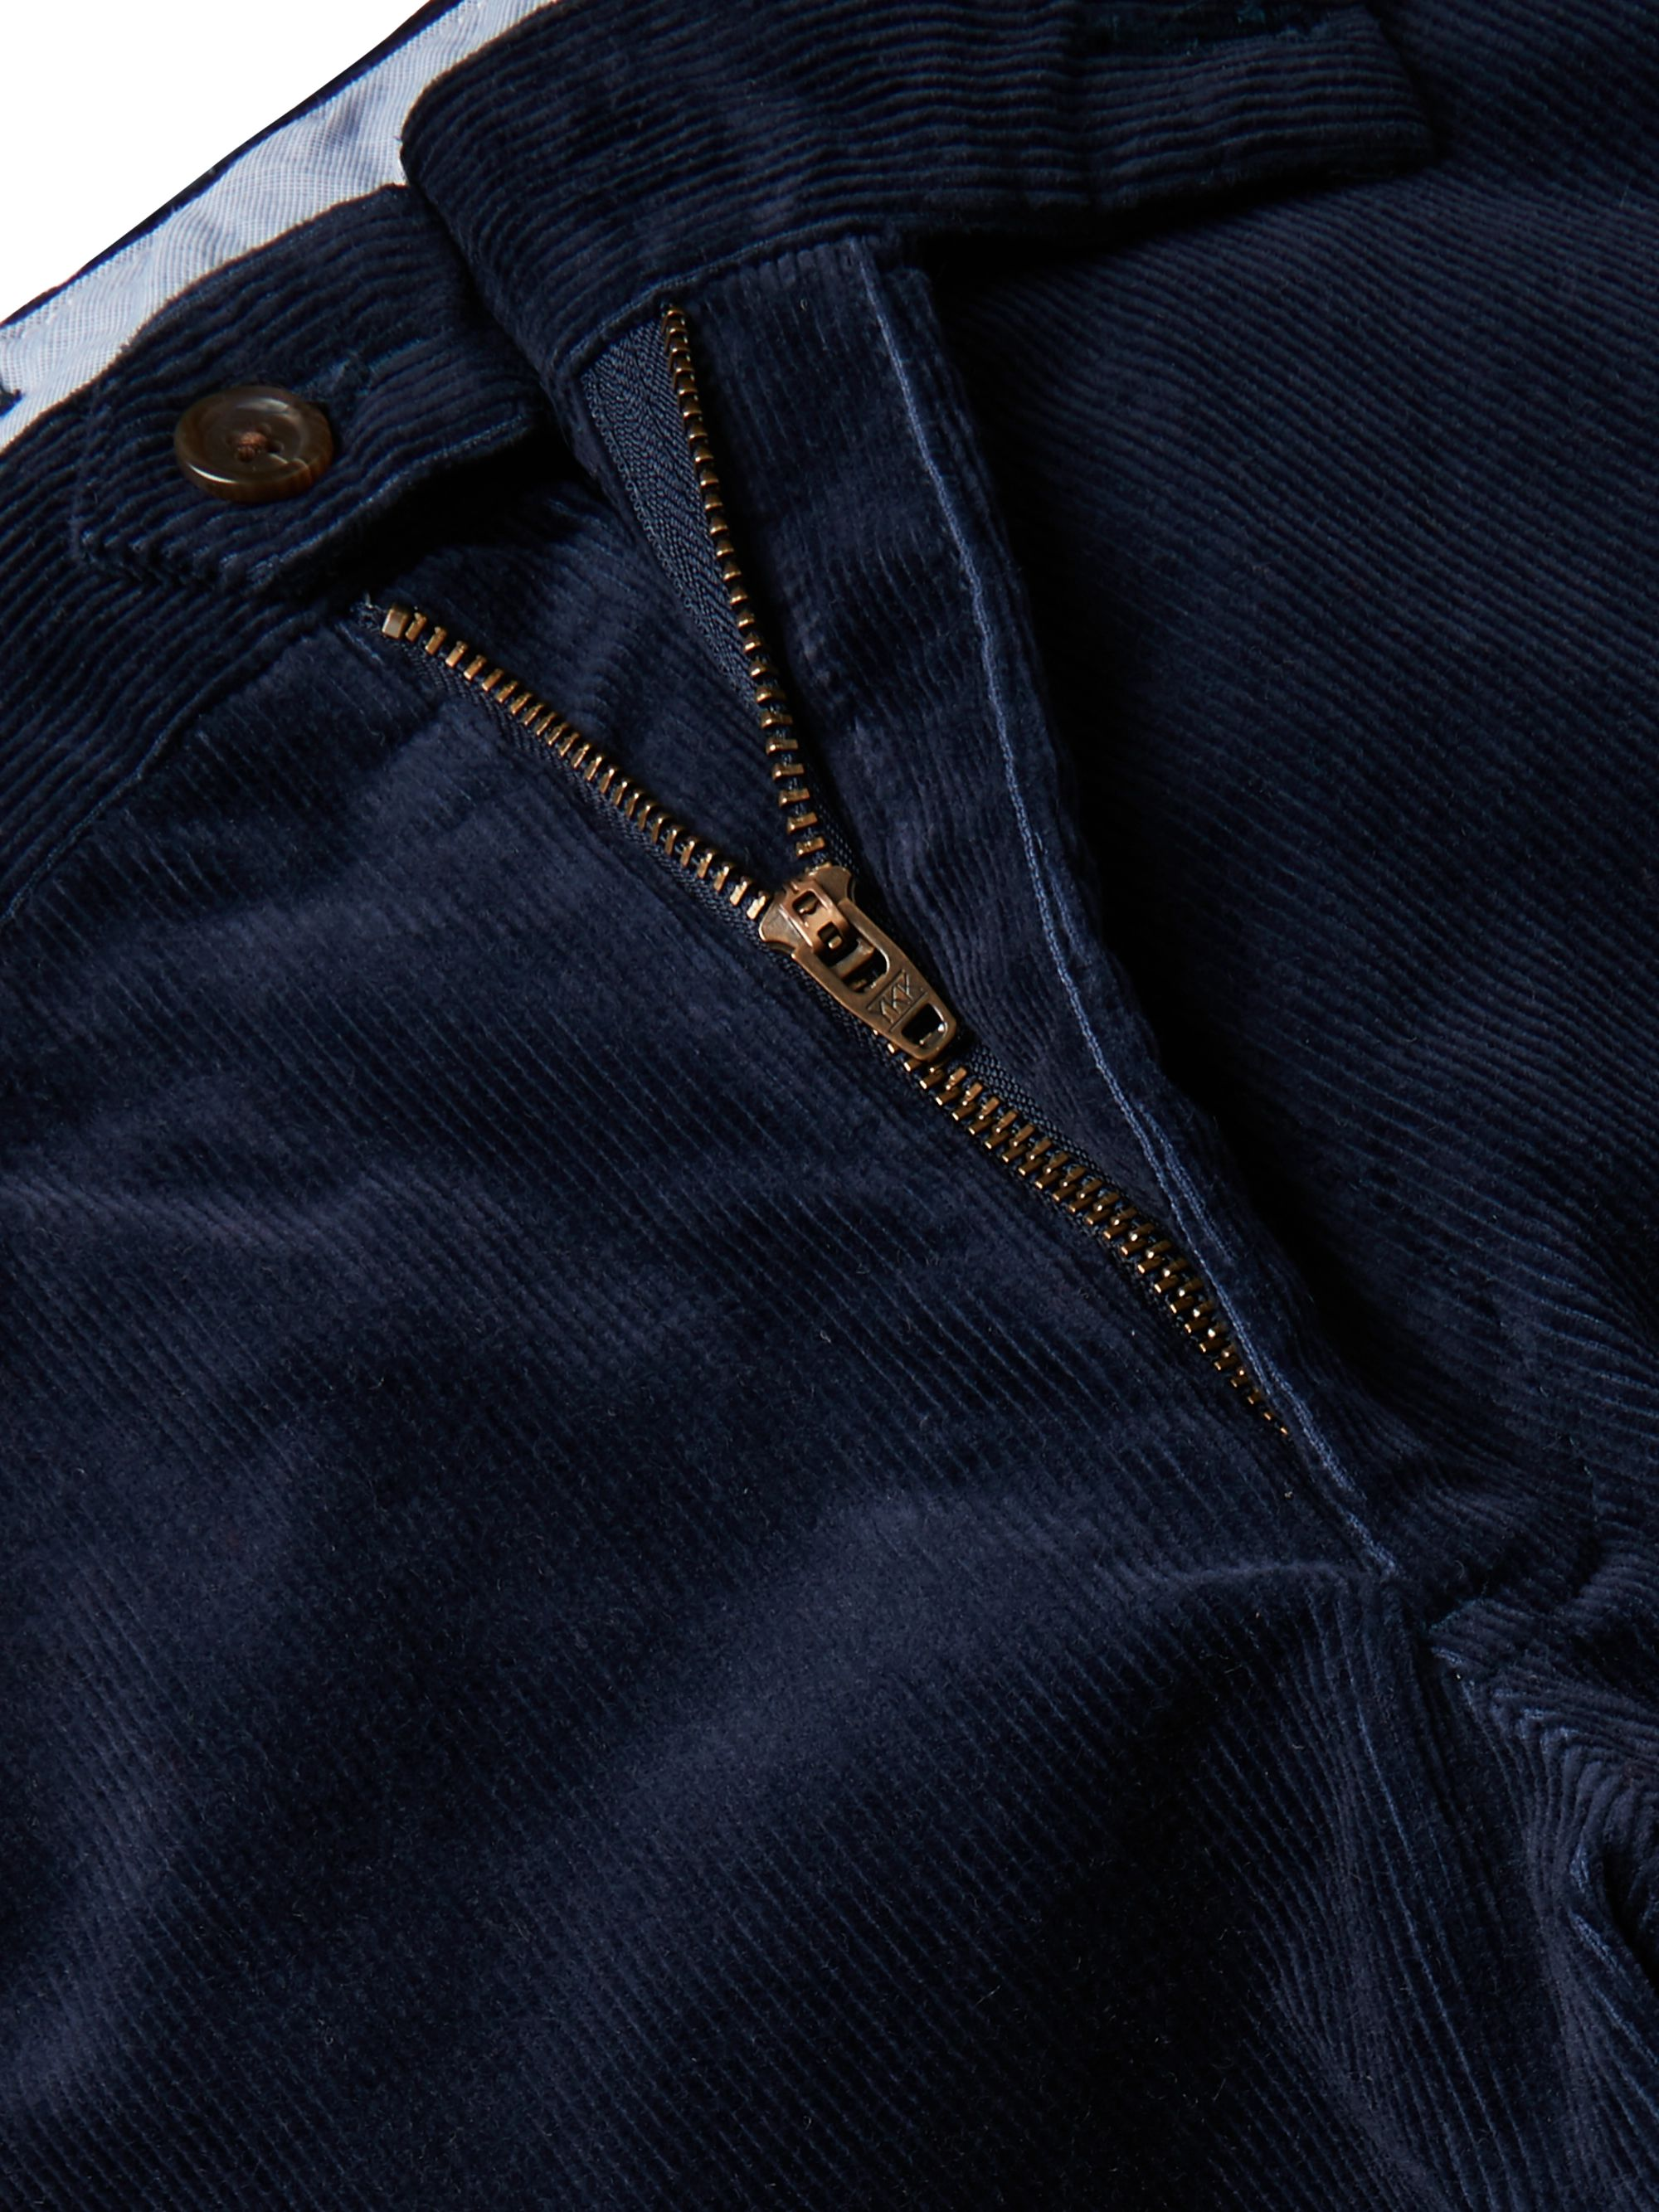 Polo Ralph Lauren Navy Cotton-Blend Corduroy Trousers